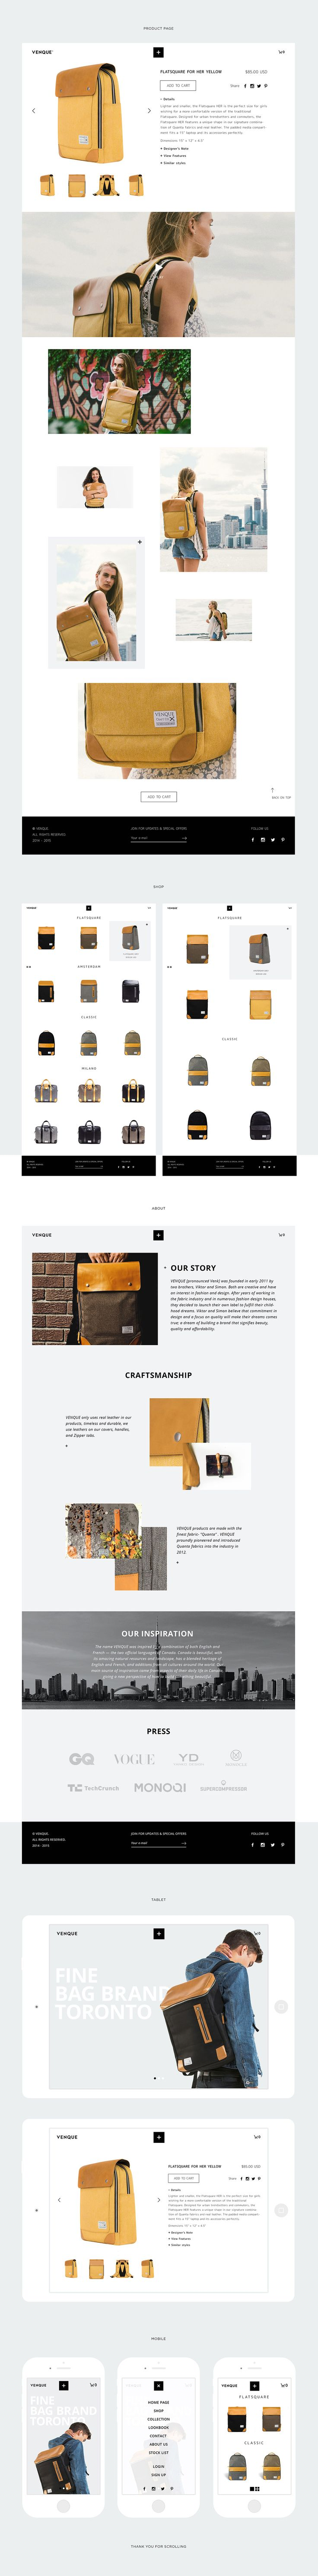 Venque rebranding on Web Design Served